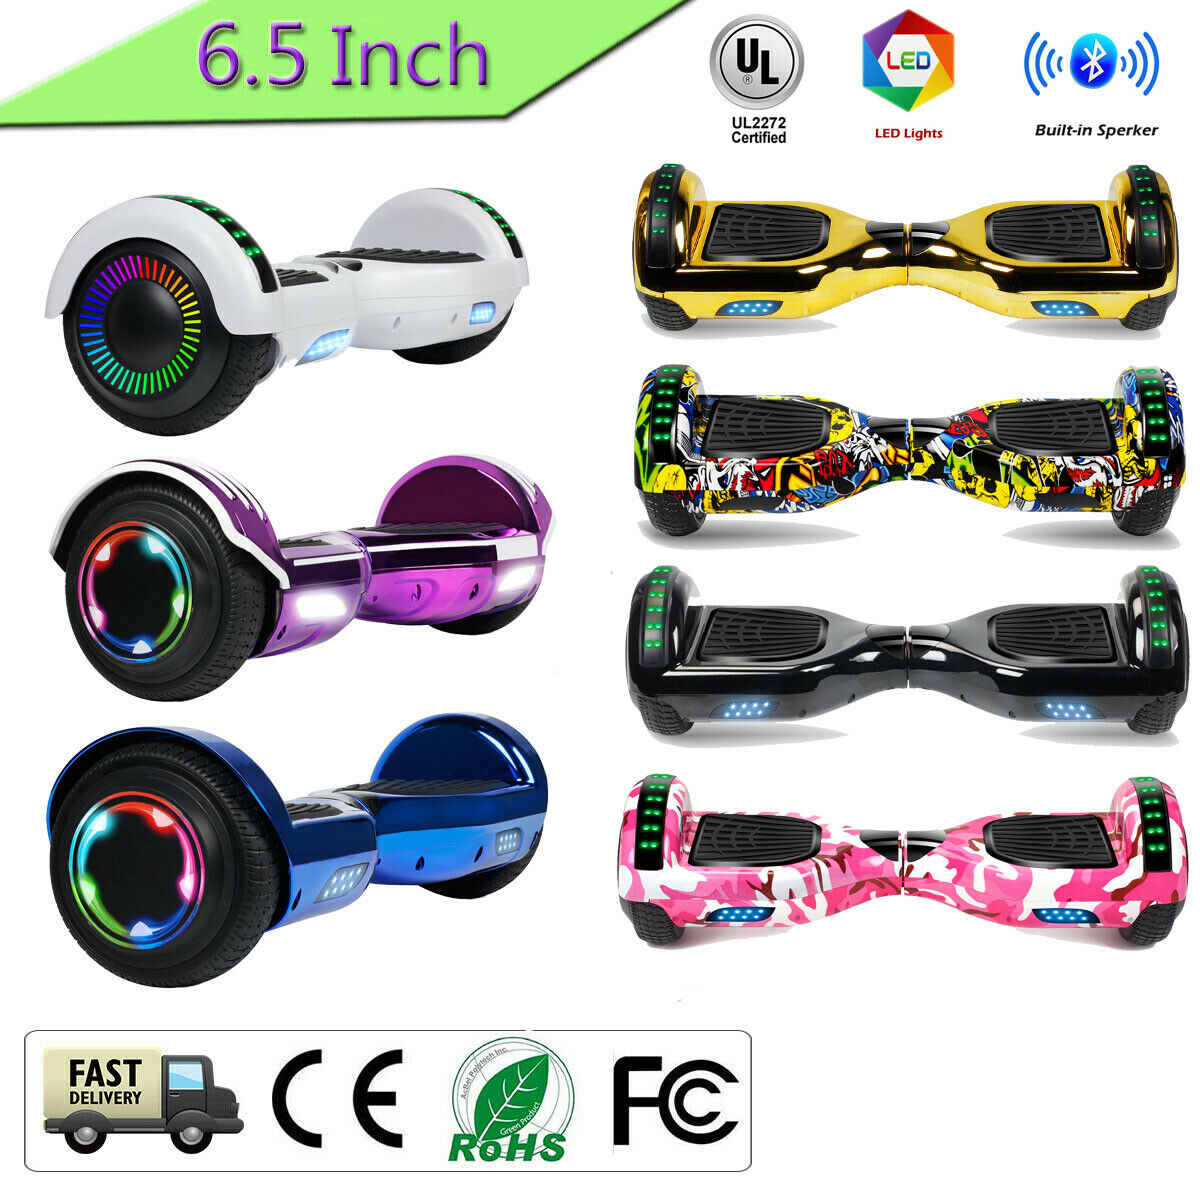 6.5 inch Self Balancing Scooter Hoverboard UL2272 w/ Bluetoo